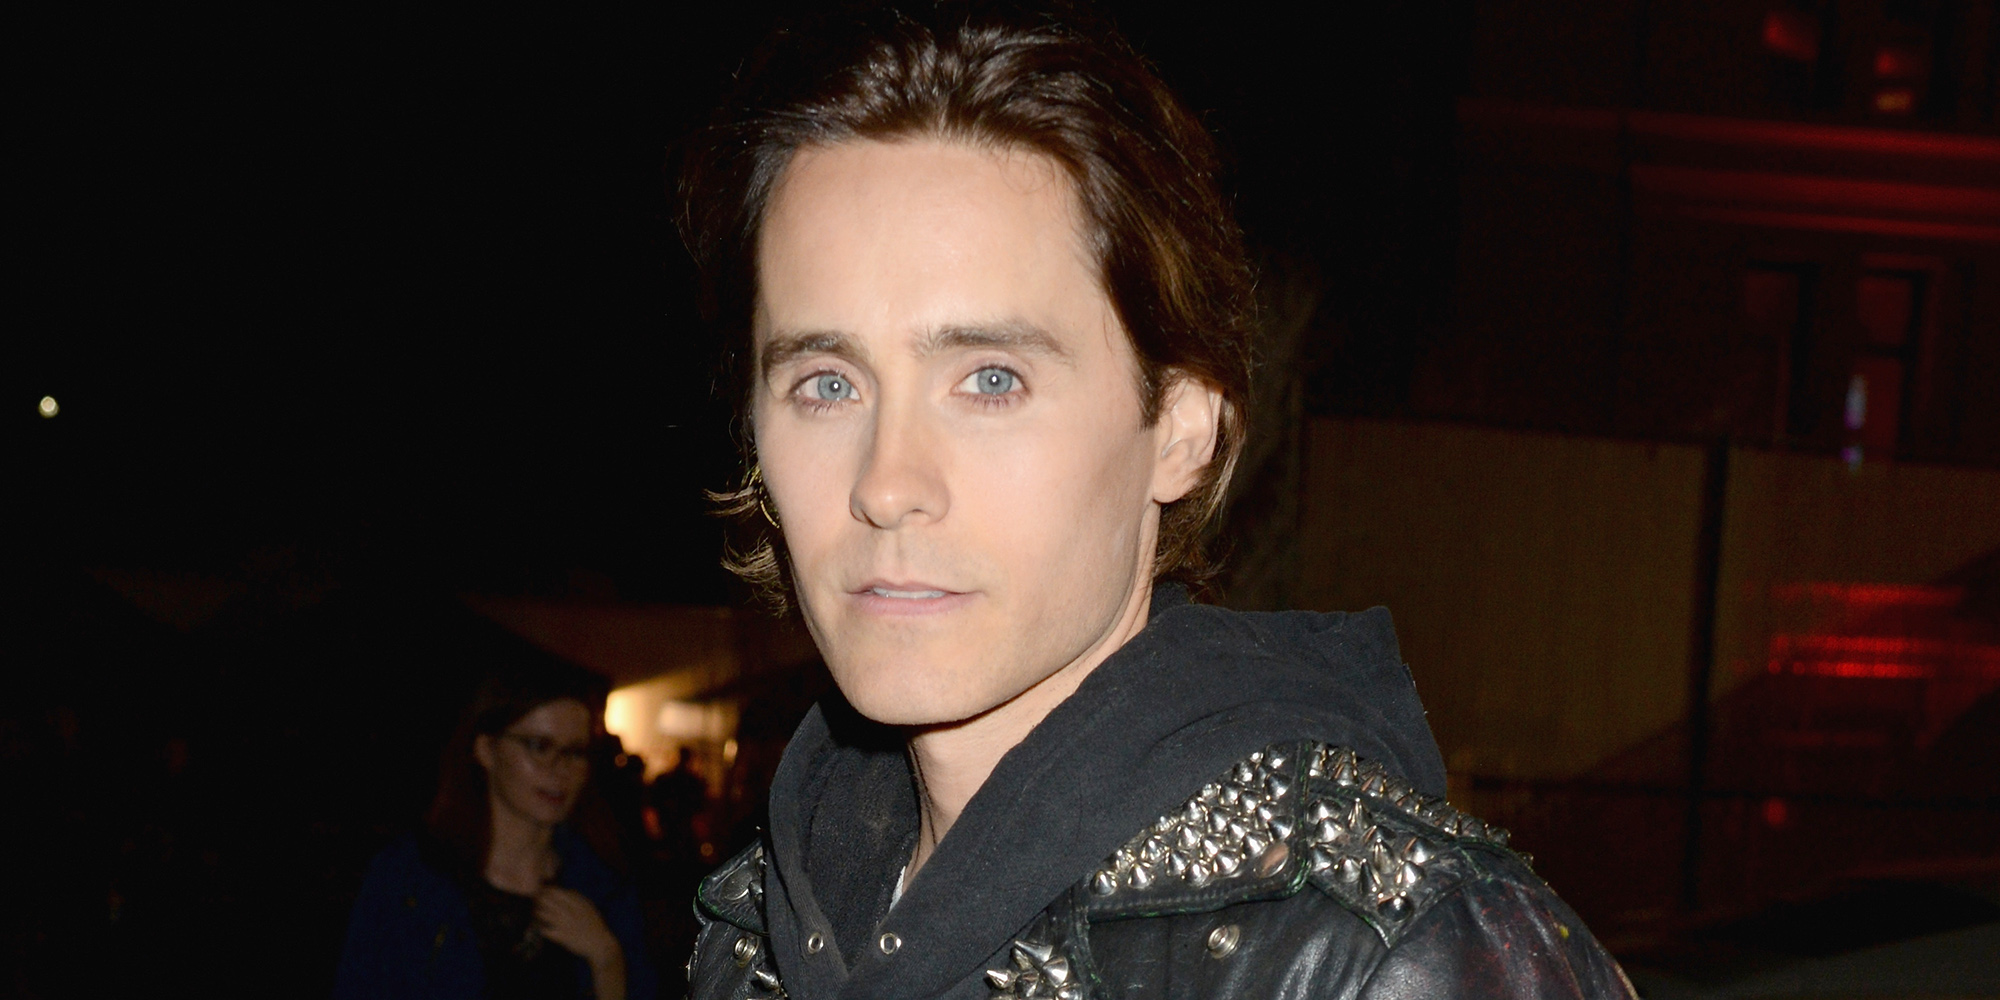 Jared Leto Normal Hair at the MTV Movie Awards - 35 Photos of Jared ...